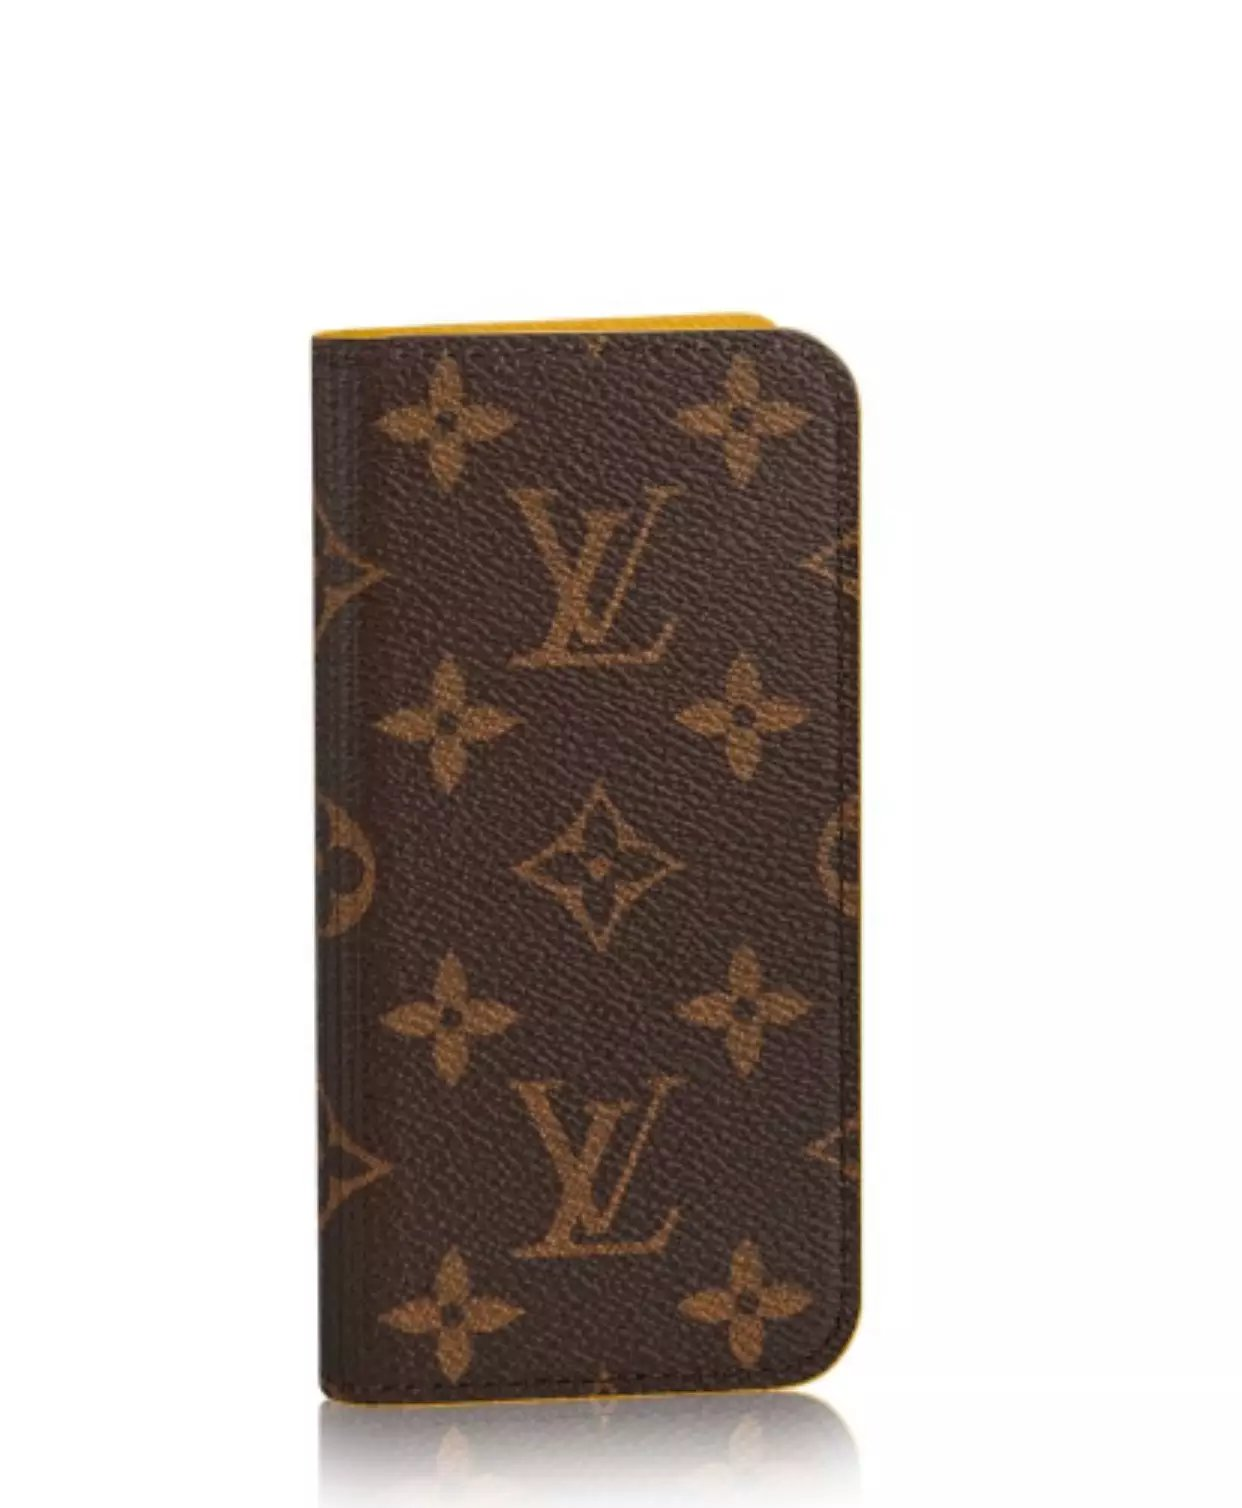 iphone 8 Plus s covers best case iphone 8 Plus Louis Vuitton iphone 8 Plus case iphone 8 Plus covers online personalised iphone 8 Plus covers apple iphone covers apple i phone covers iphone 8 Plus cases with front cover new case for iPhone 8 Plus